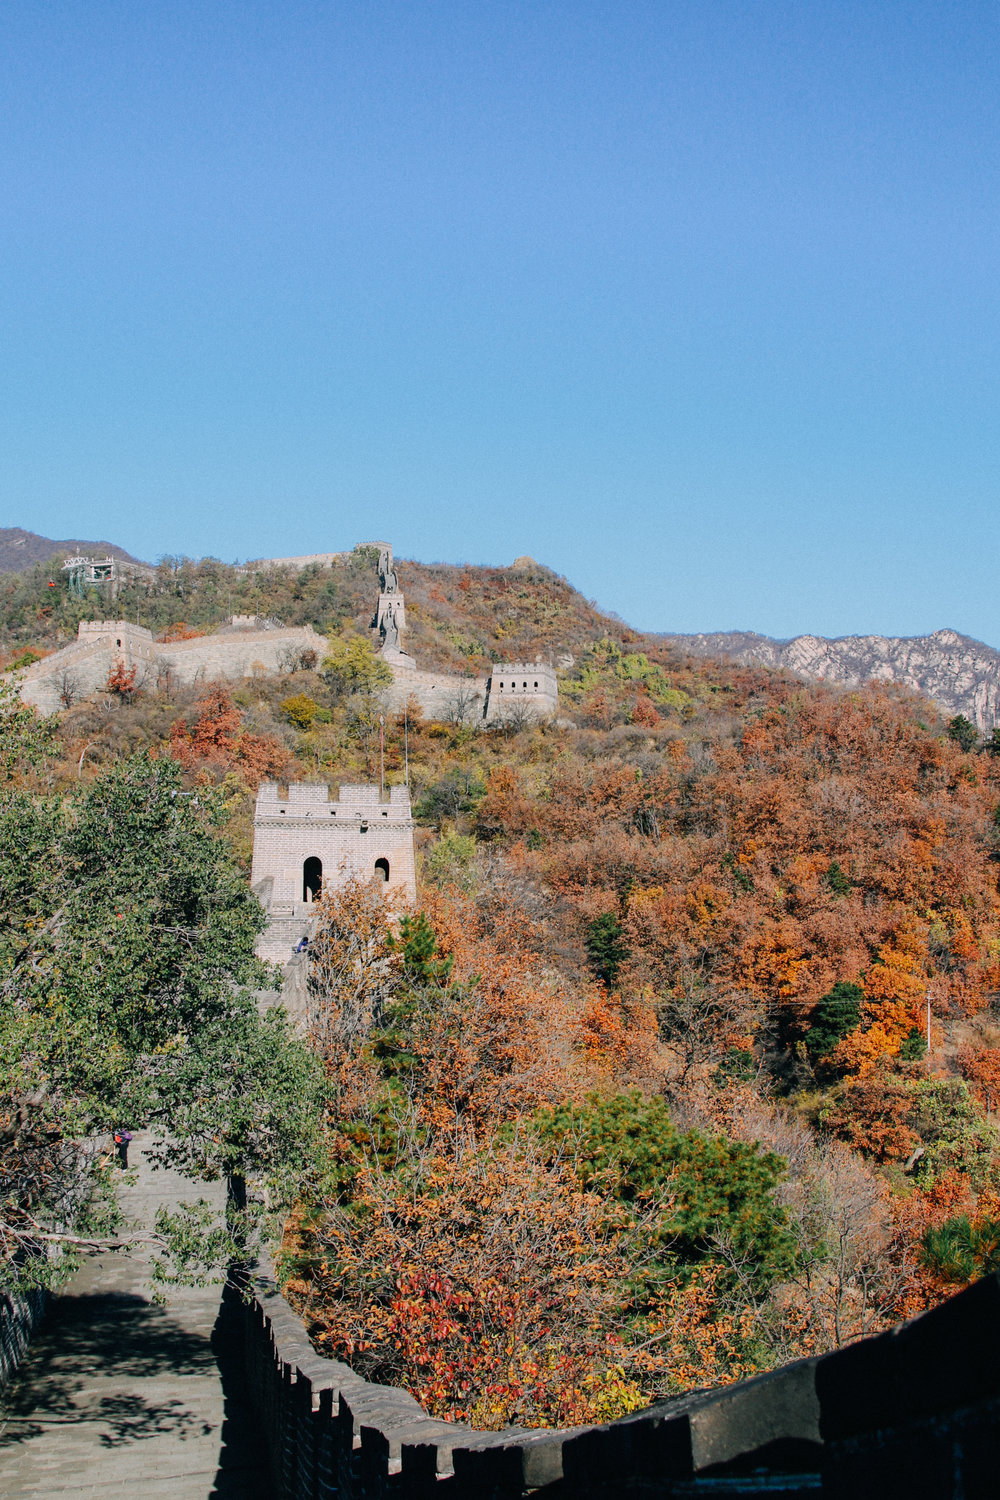 GreatWall-37.jpg